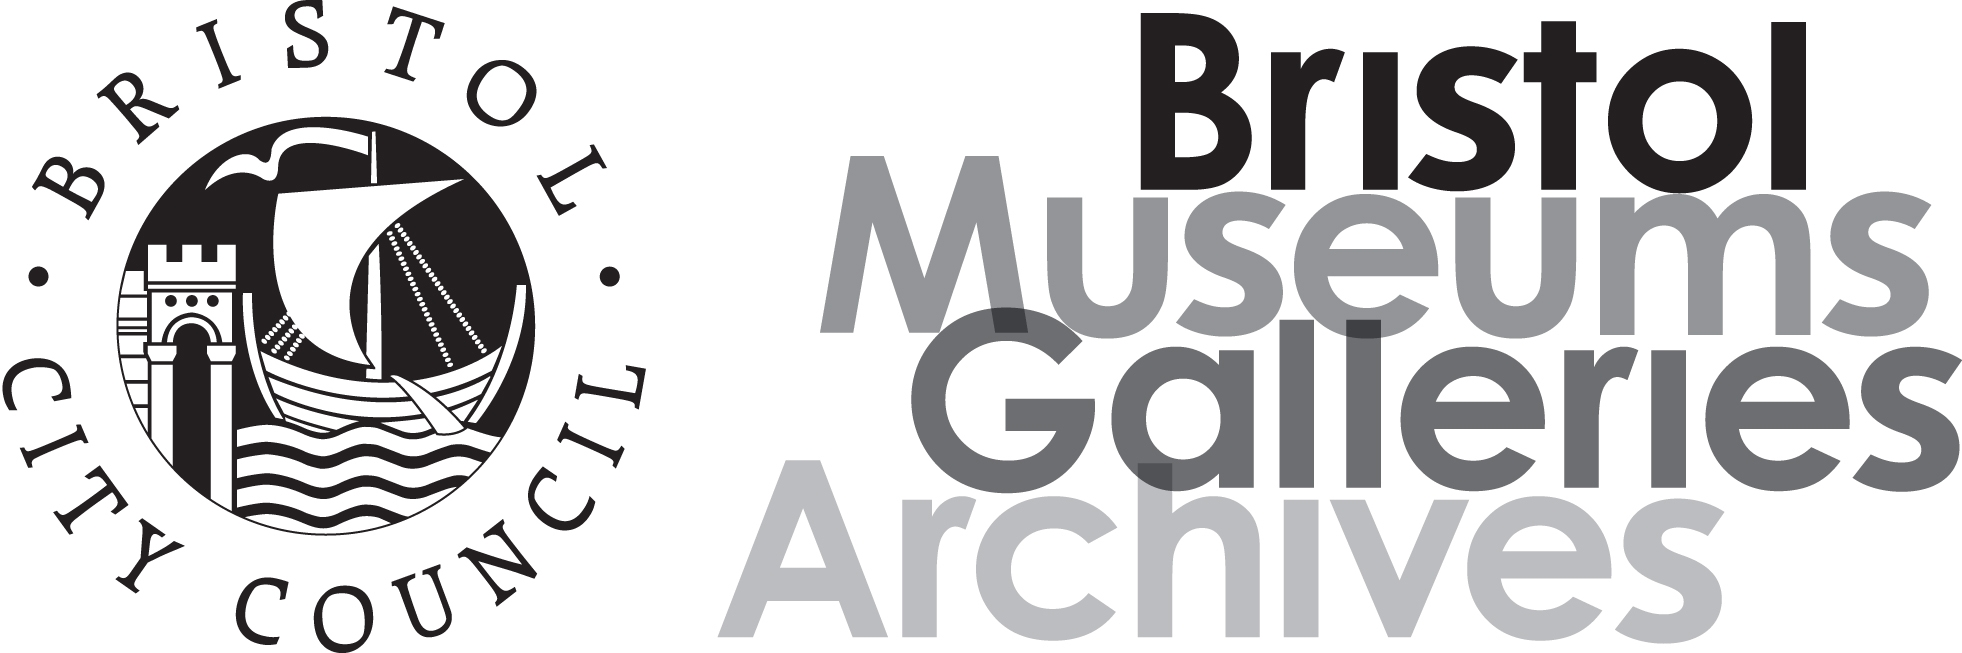 Bristol Museums, Galleries & Archives logo